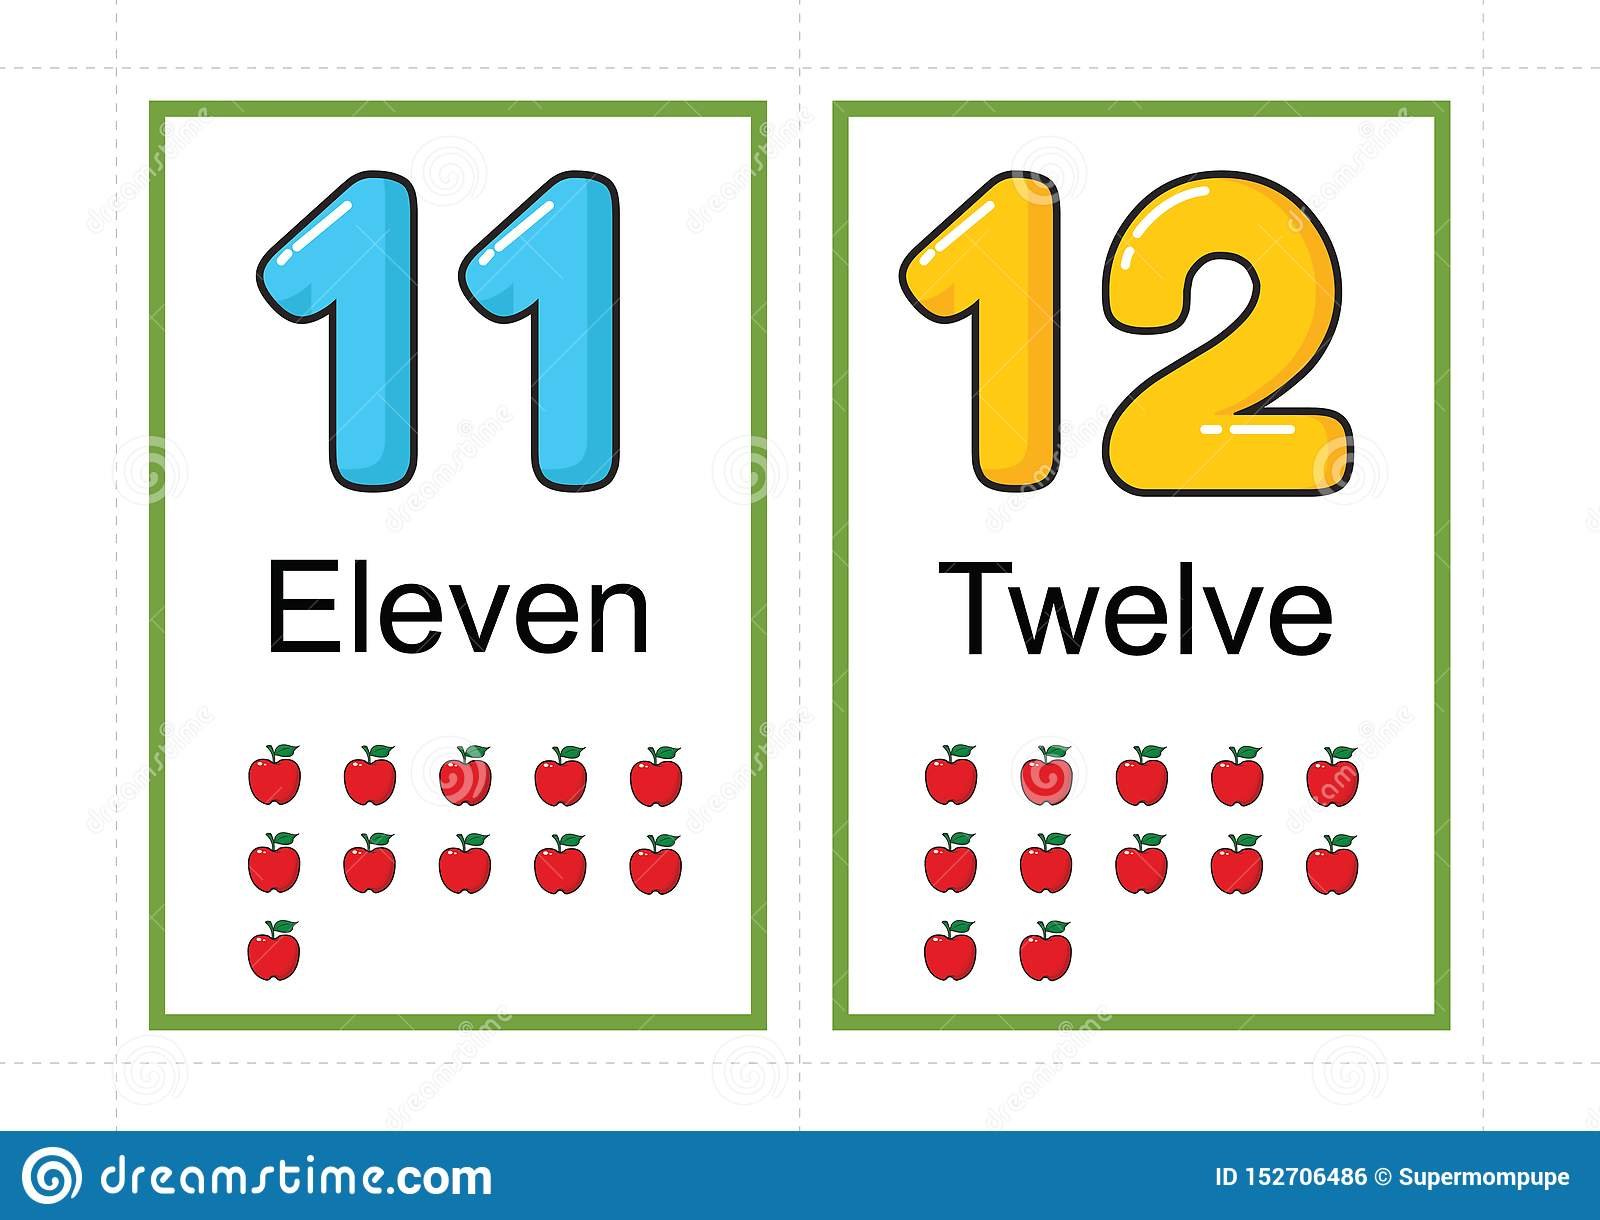 Printable Number Flashcards For Teaching Number Flashcards